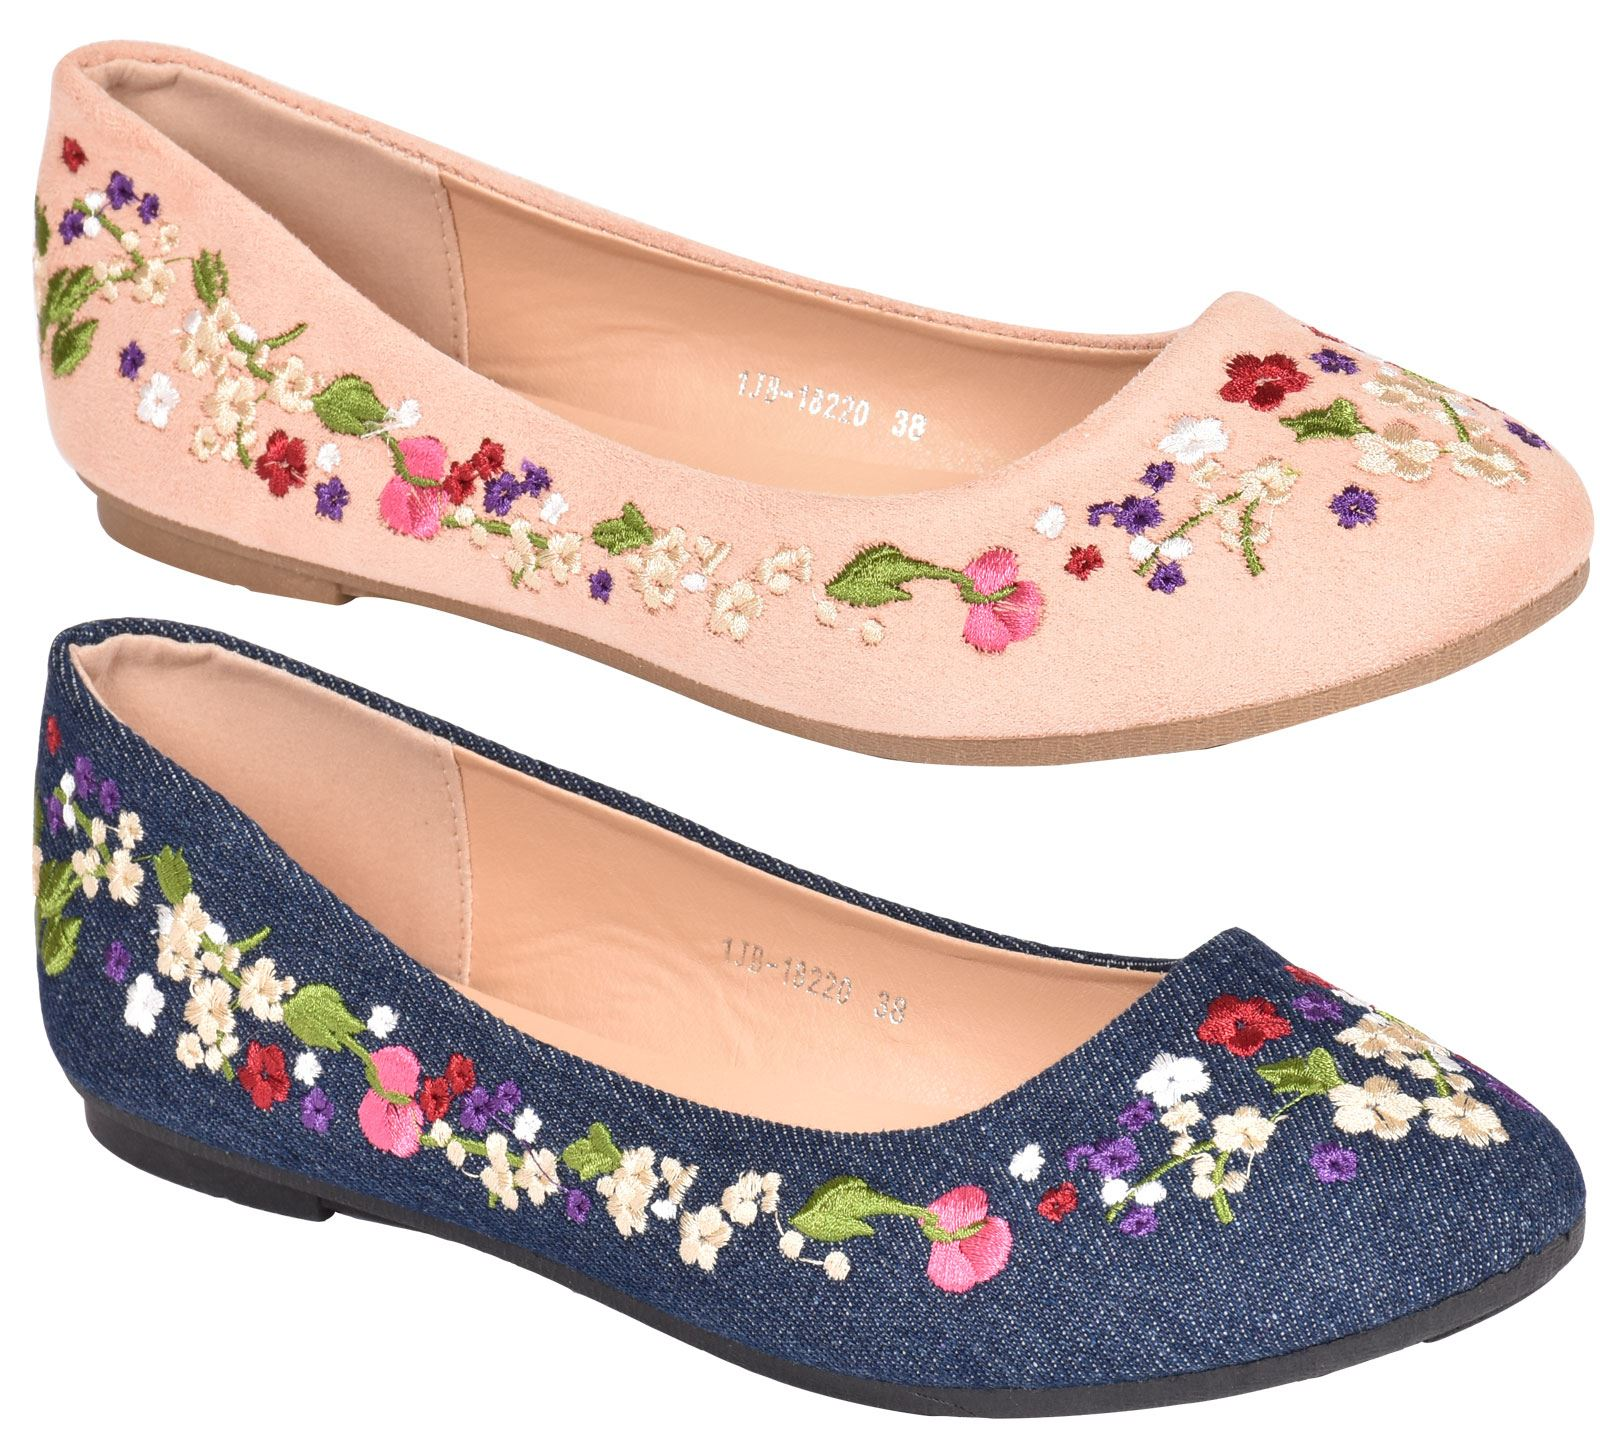 New Ladies Flat Plimsolls Floral Pumps Shoes UK Size 3-9 Sneakers